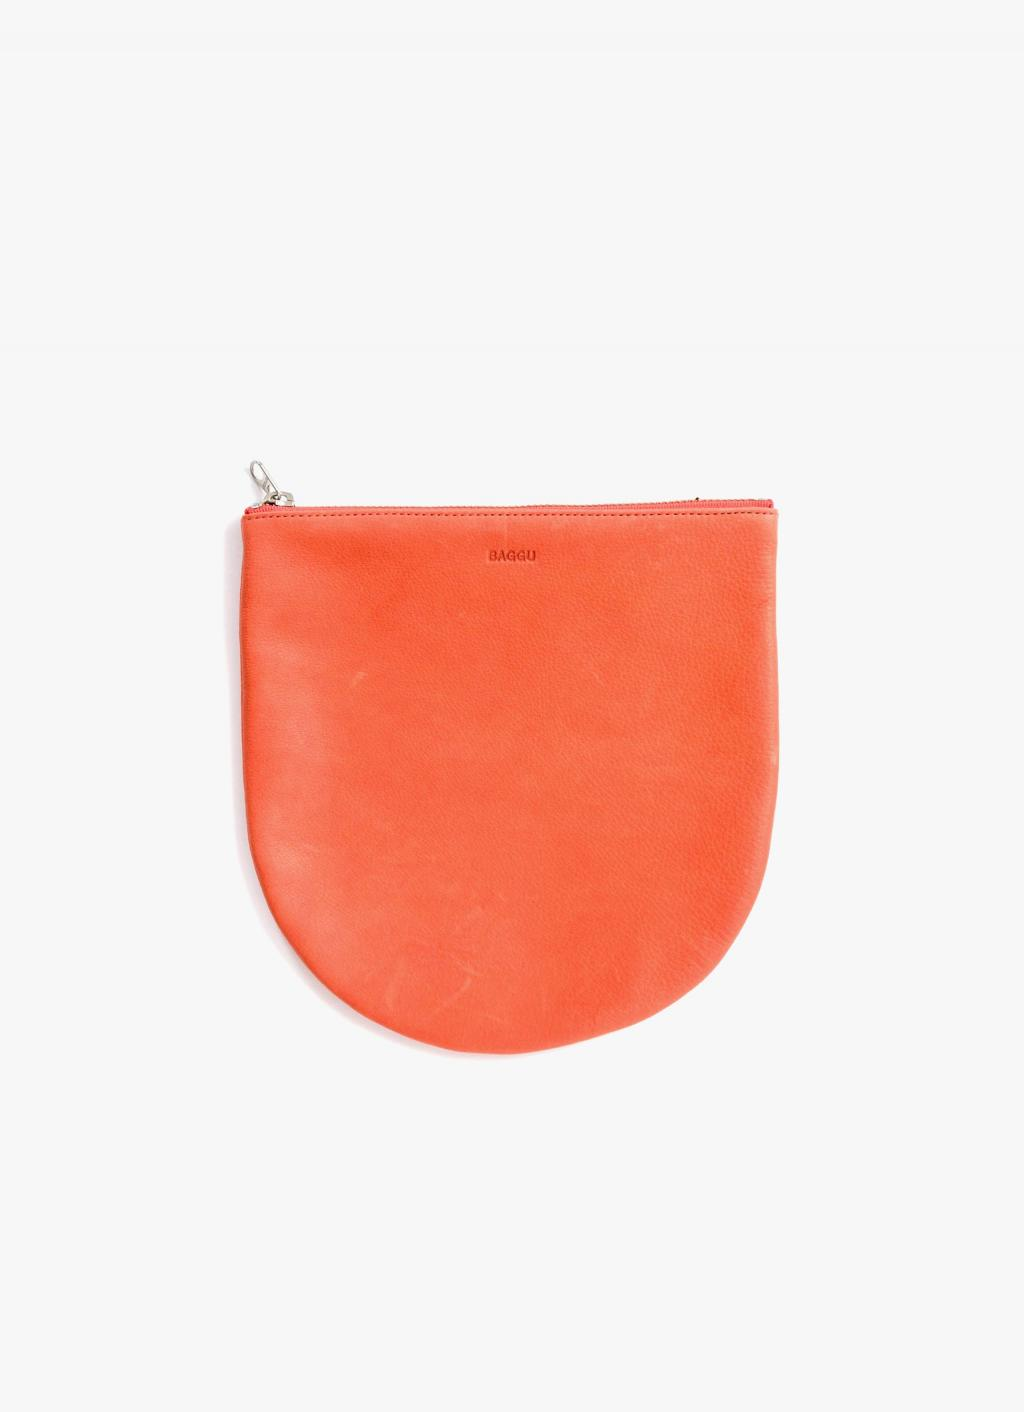 Baggu - Large U Pouch - Warm Red - Leather